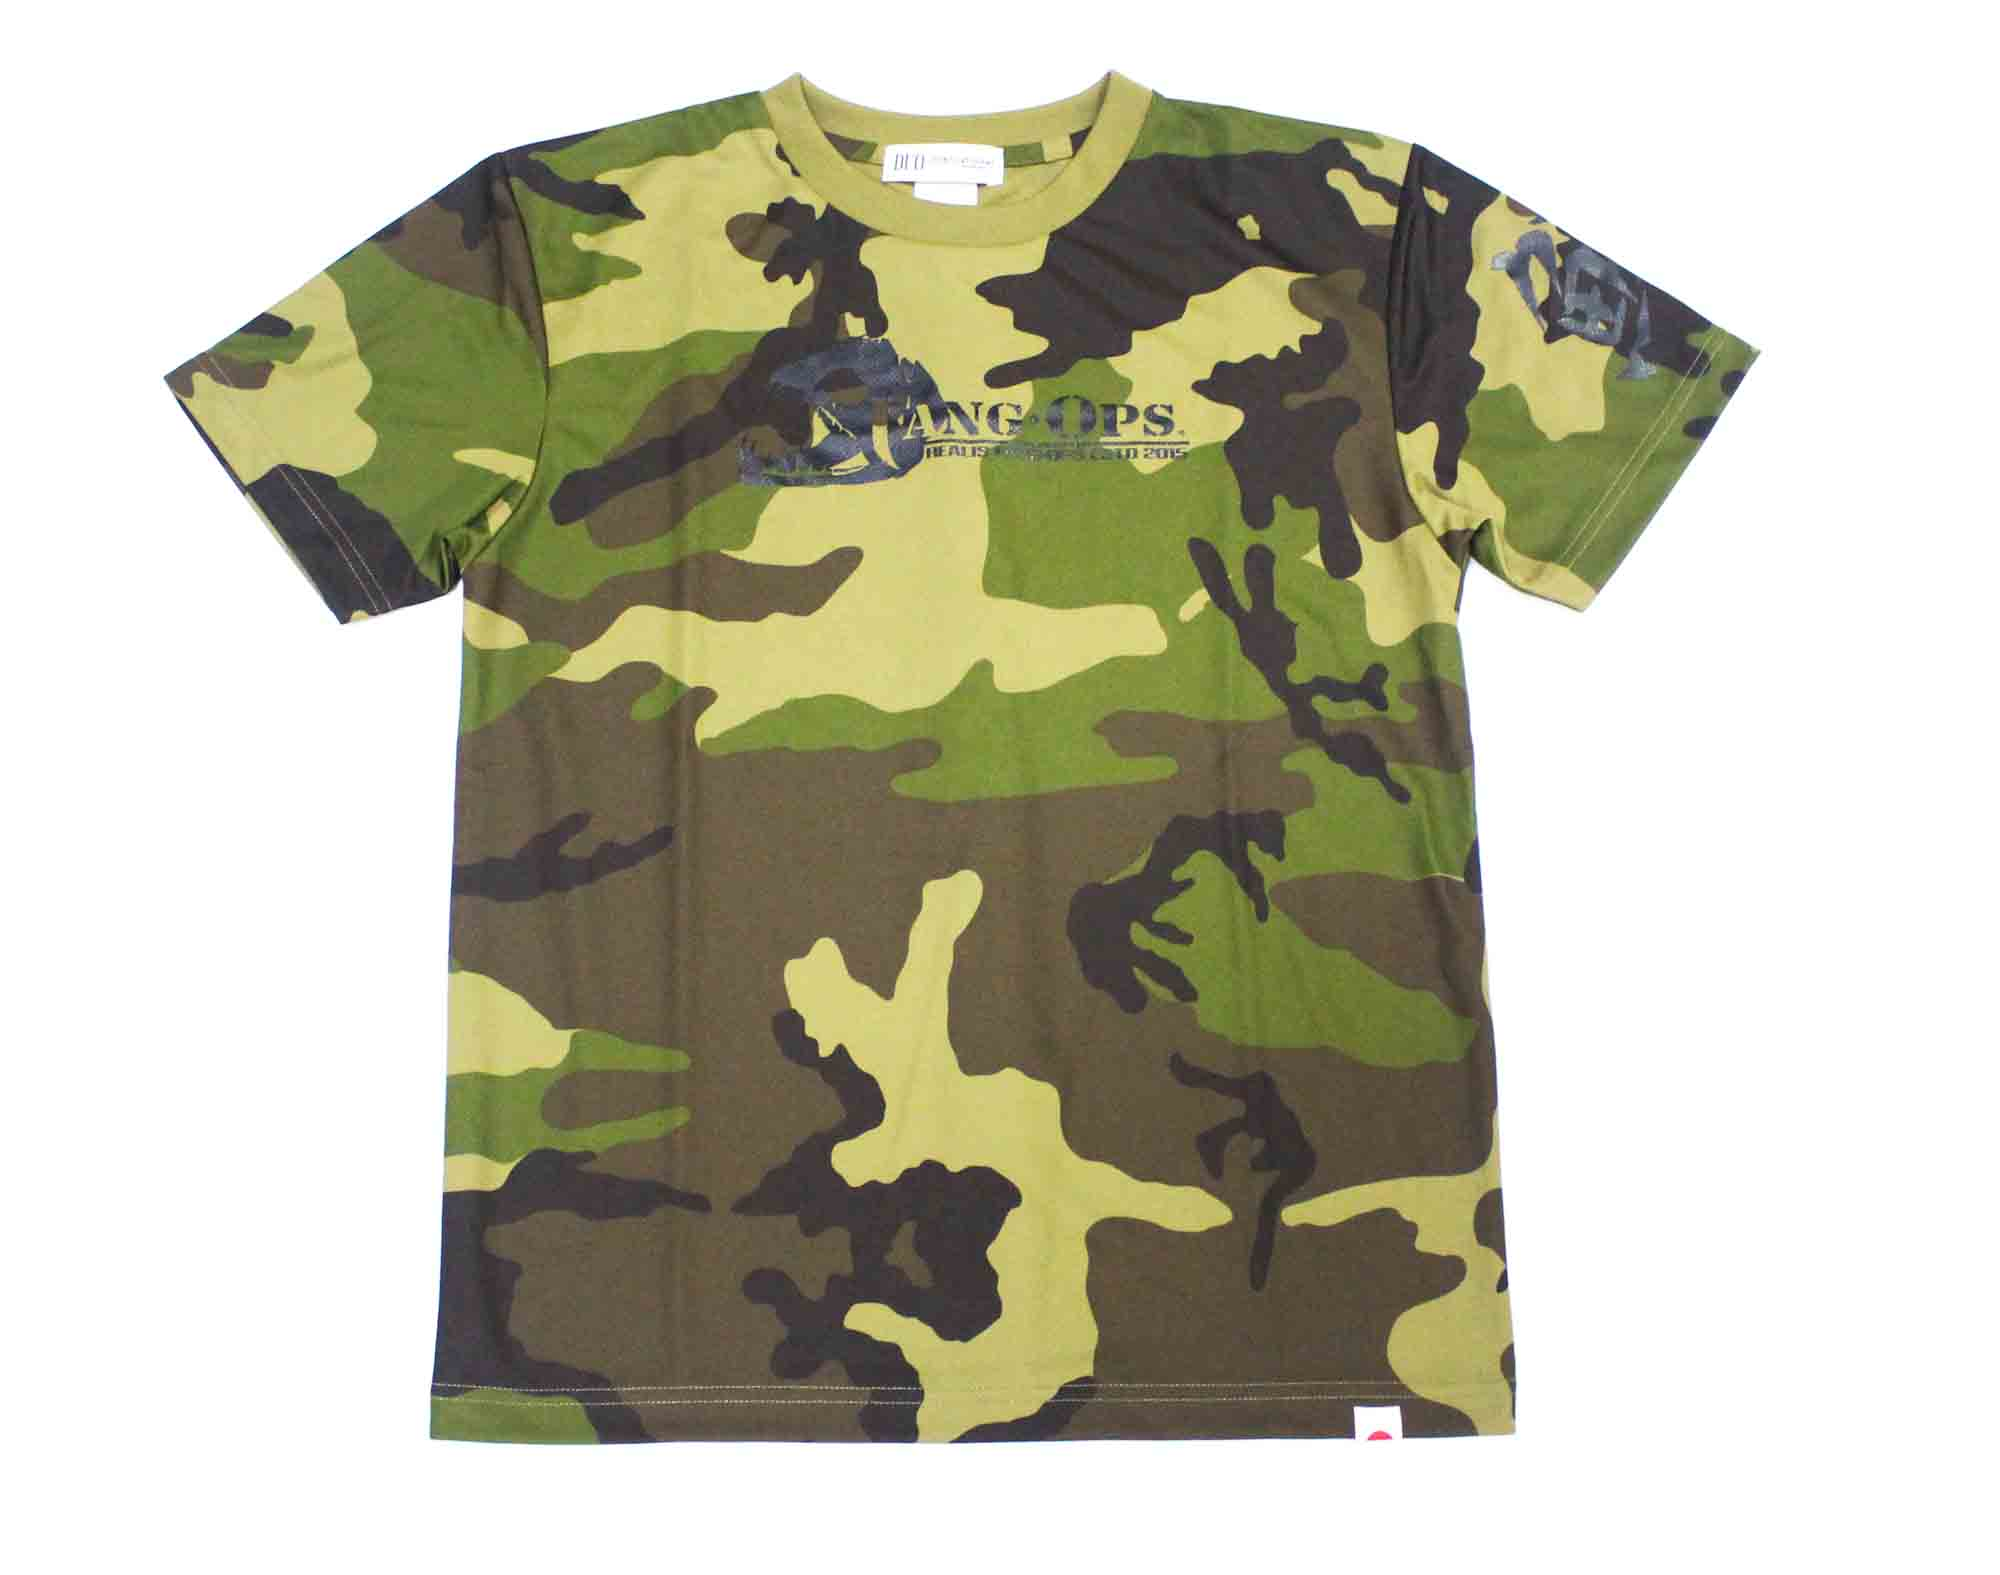 Duo T Shirt Fang Ops Beast Short Sleeve Dry Fit Camo Size L (1430)